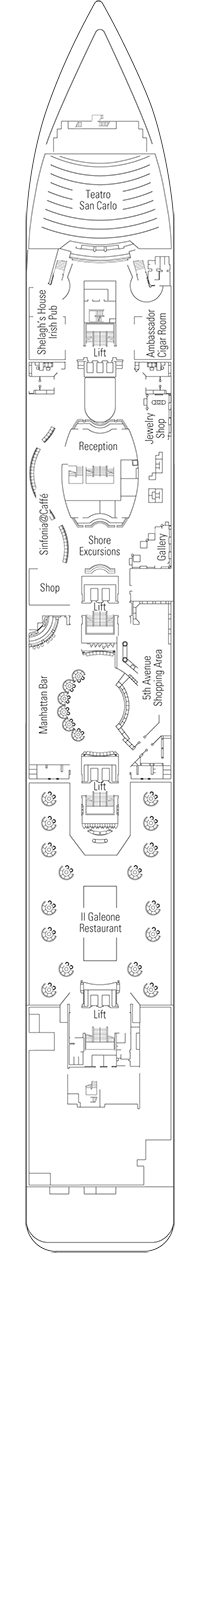 Beethoven Deck Plan